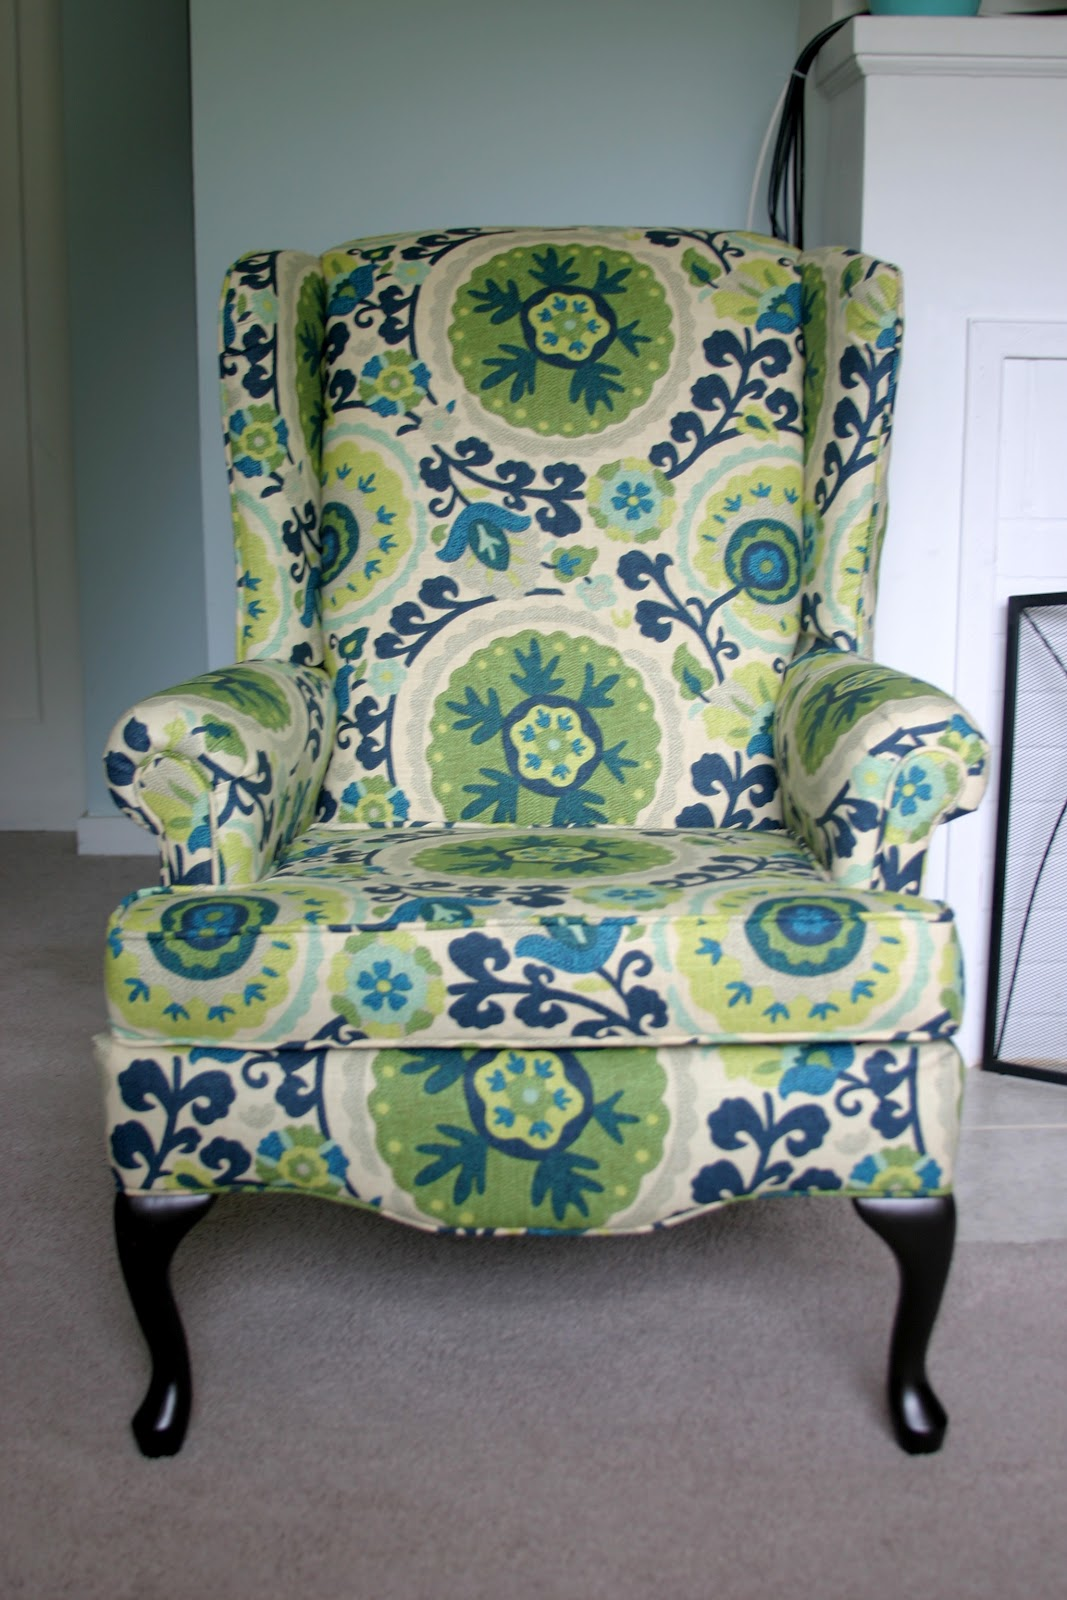 upholstering a chair leather office make bake and love re wing back